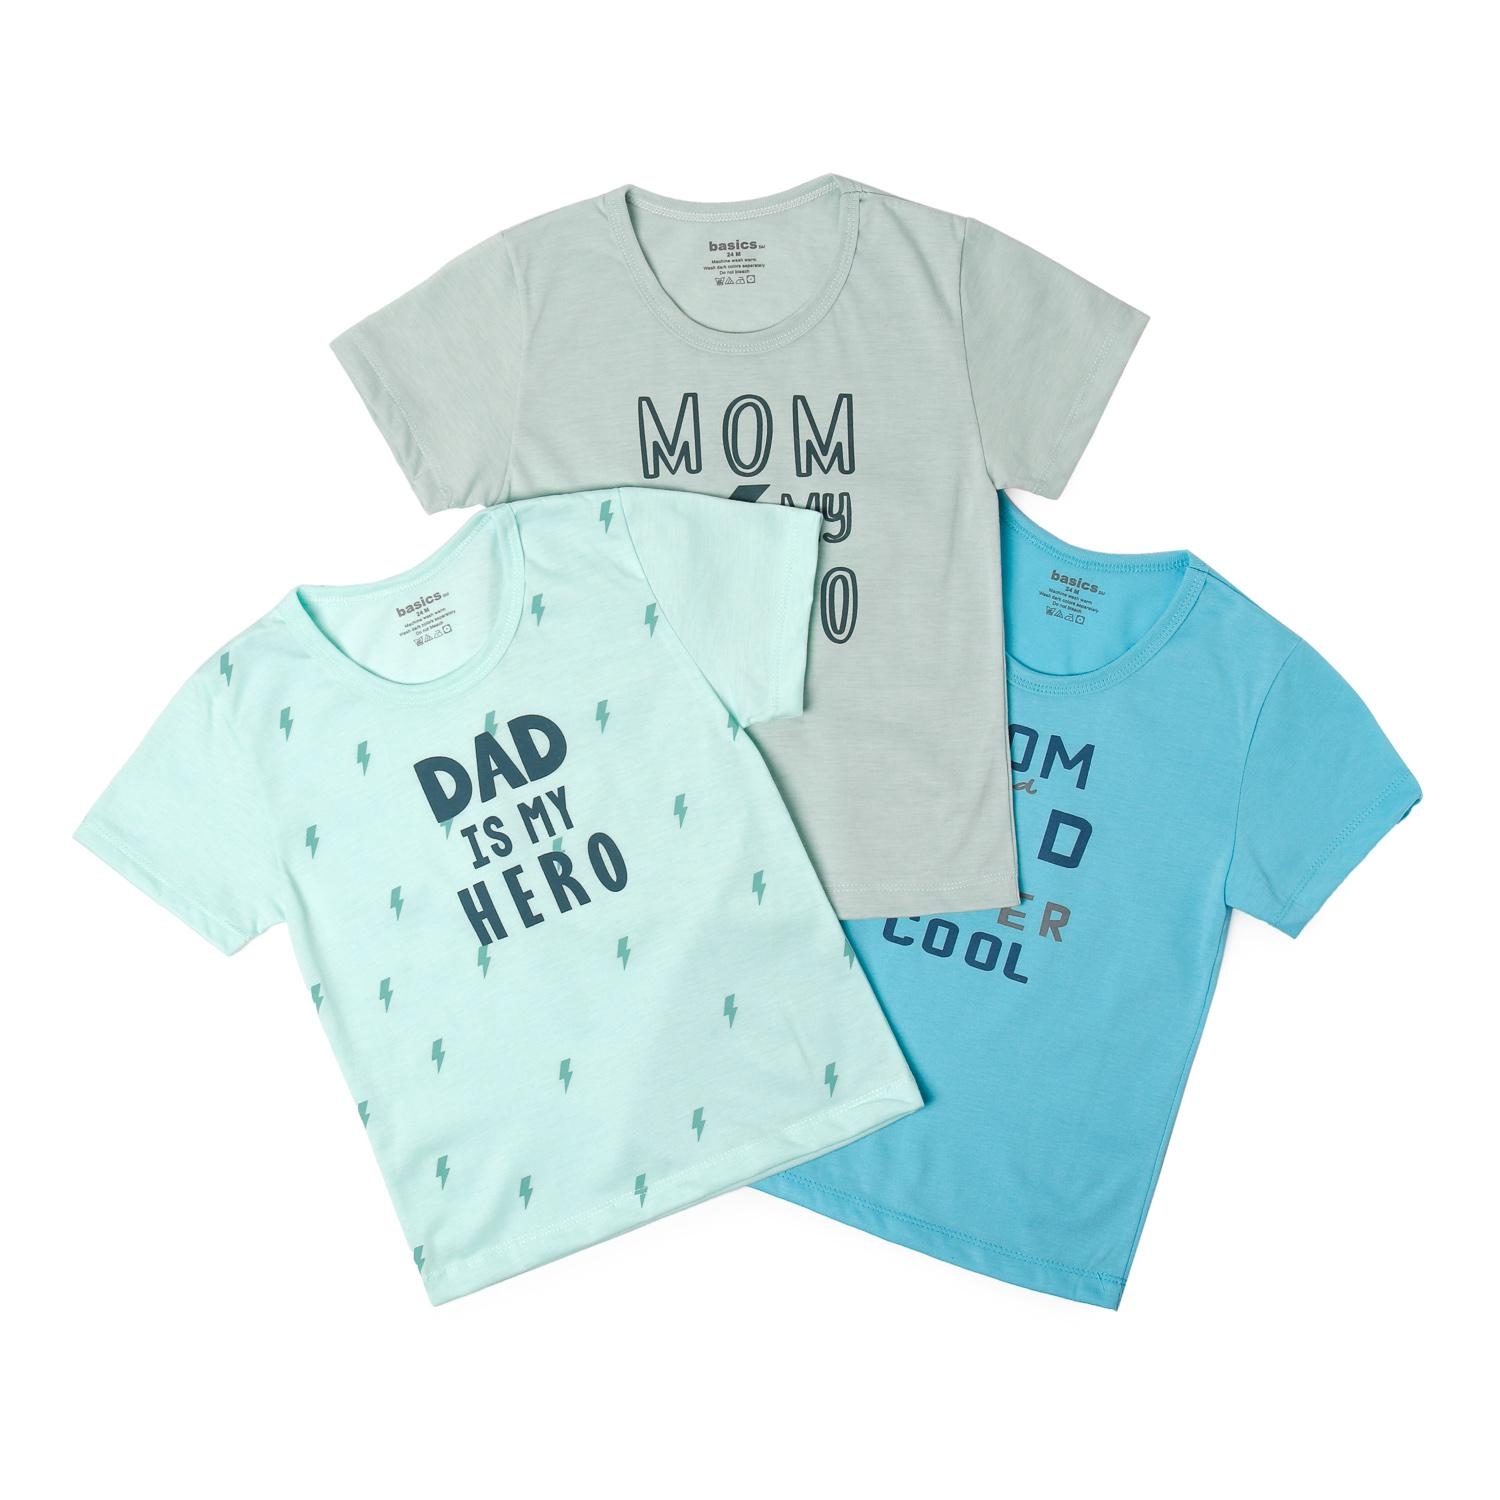 34a15555d Boys Clothing and Accessories for sale - Baby Clothing Accessories ...